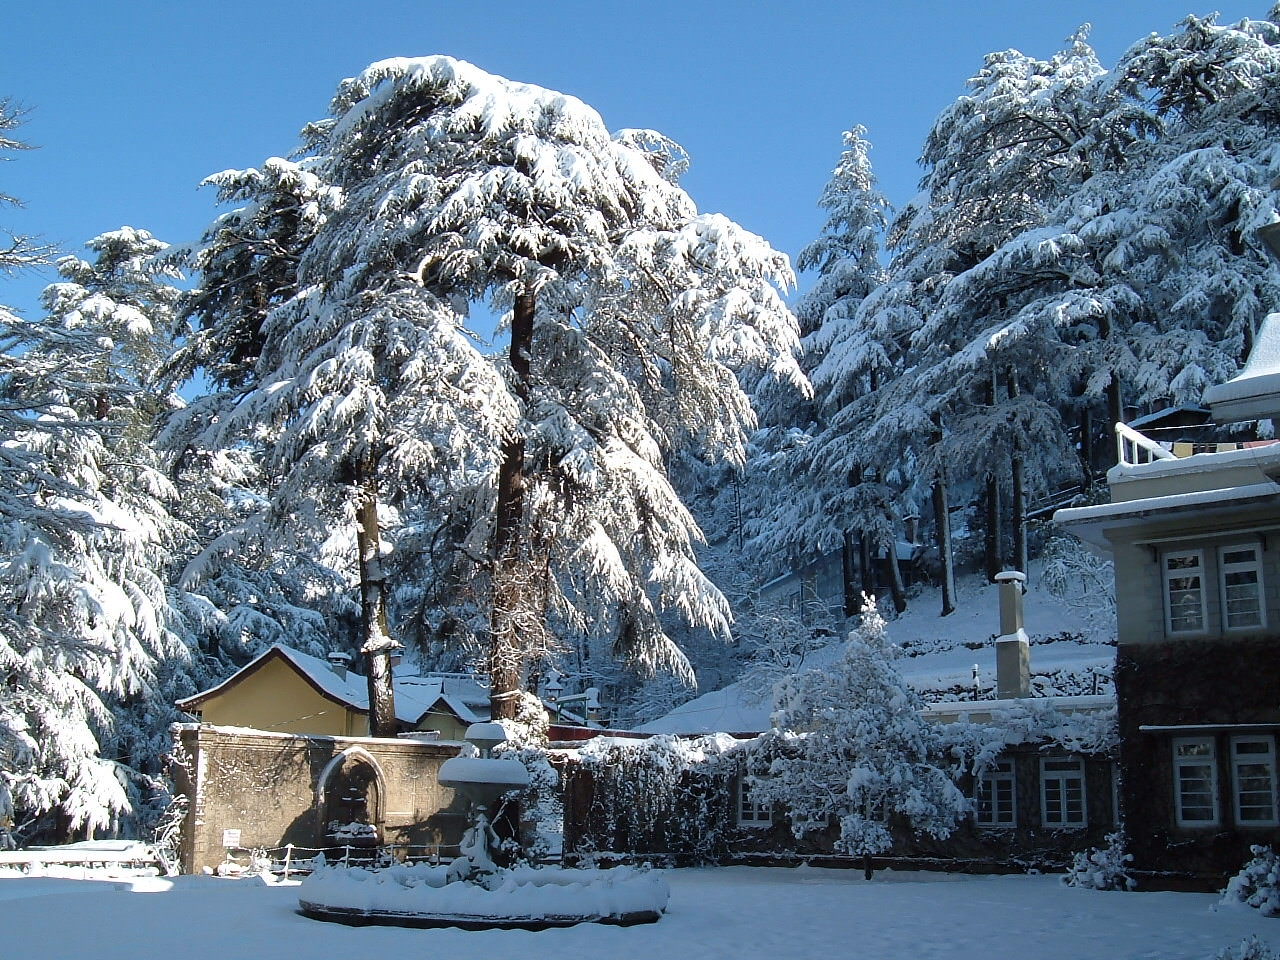 Delhi – Shimla – Delhi for 2 nights/ 3 days at Rs. 25,500 from Journey mart